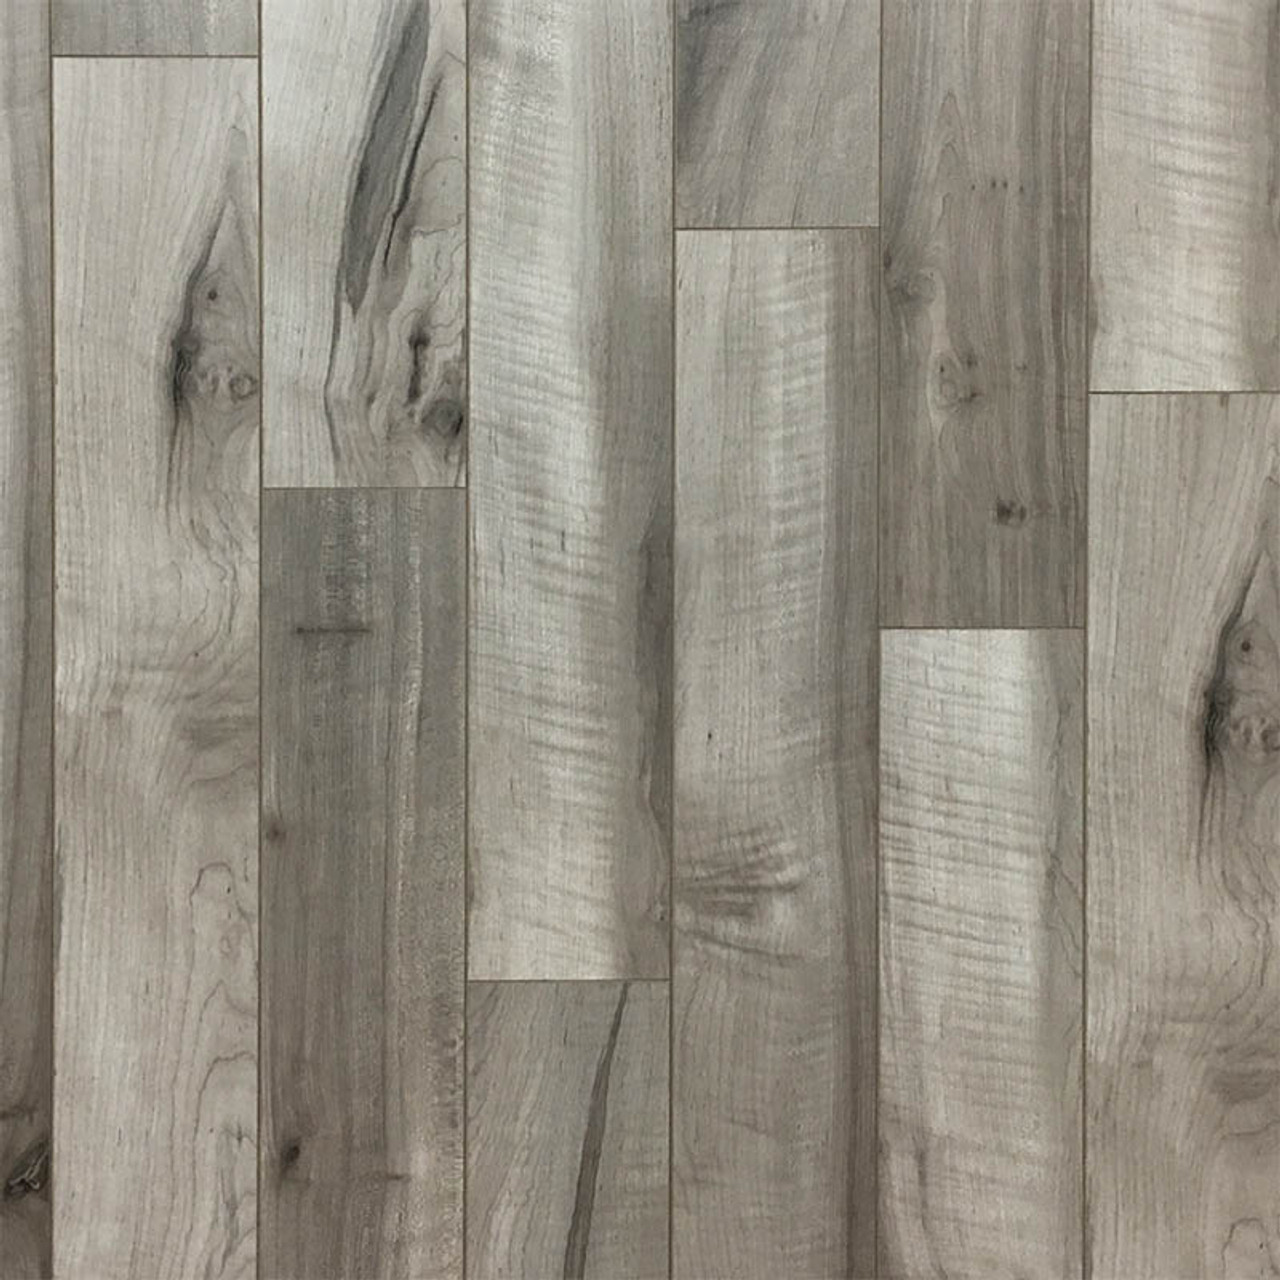 12MM Tulsa Laminate Flooring   Attached Underpad   Studio +   16.48 Sq.Ft. Per Box   Sold by the Box